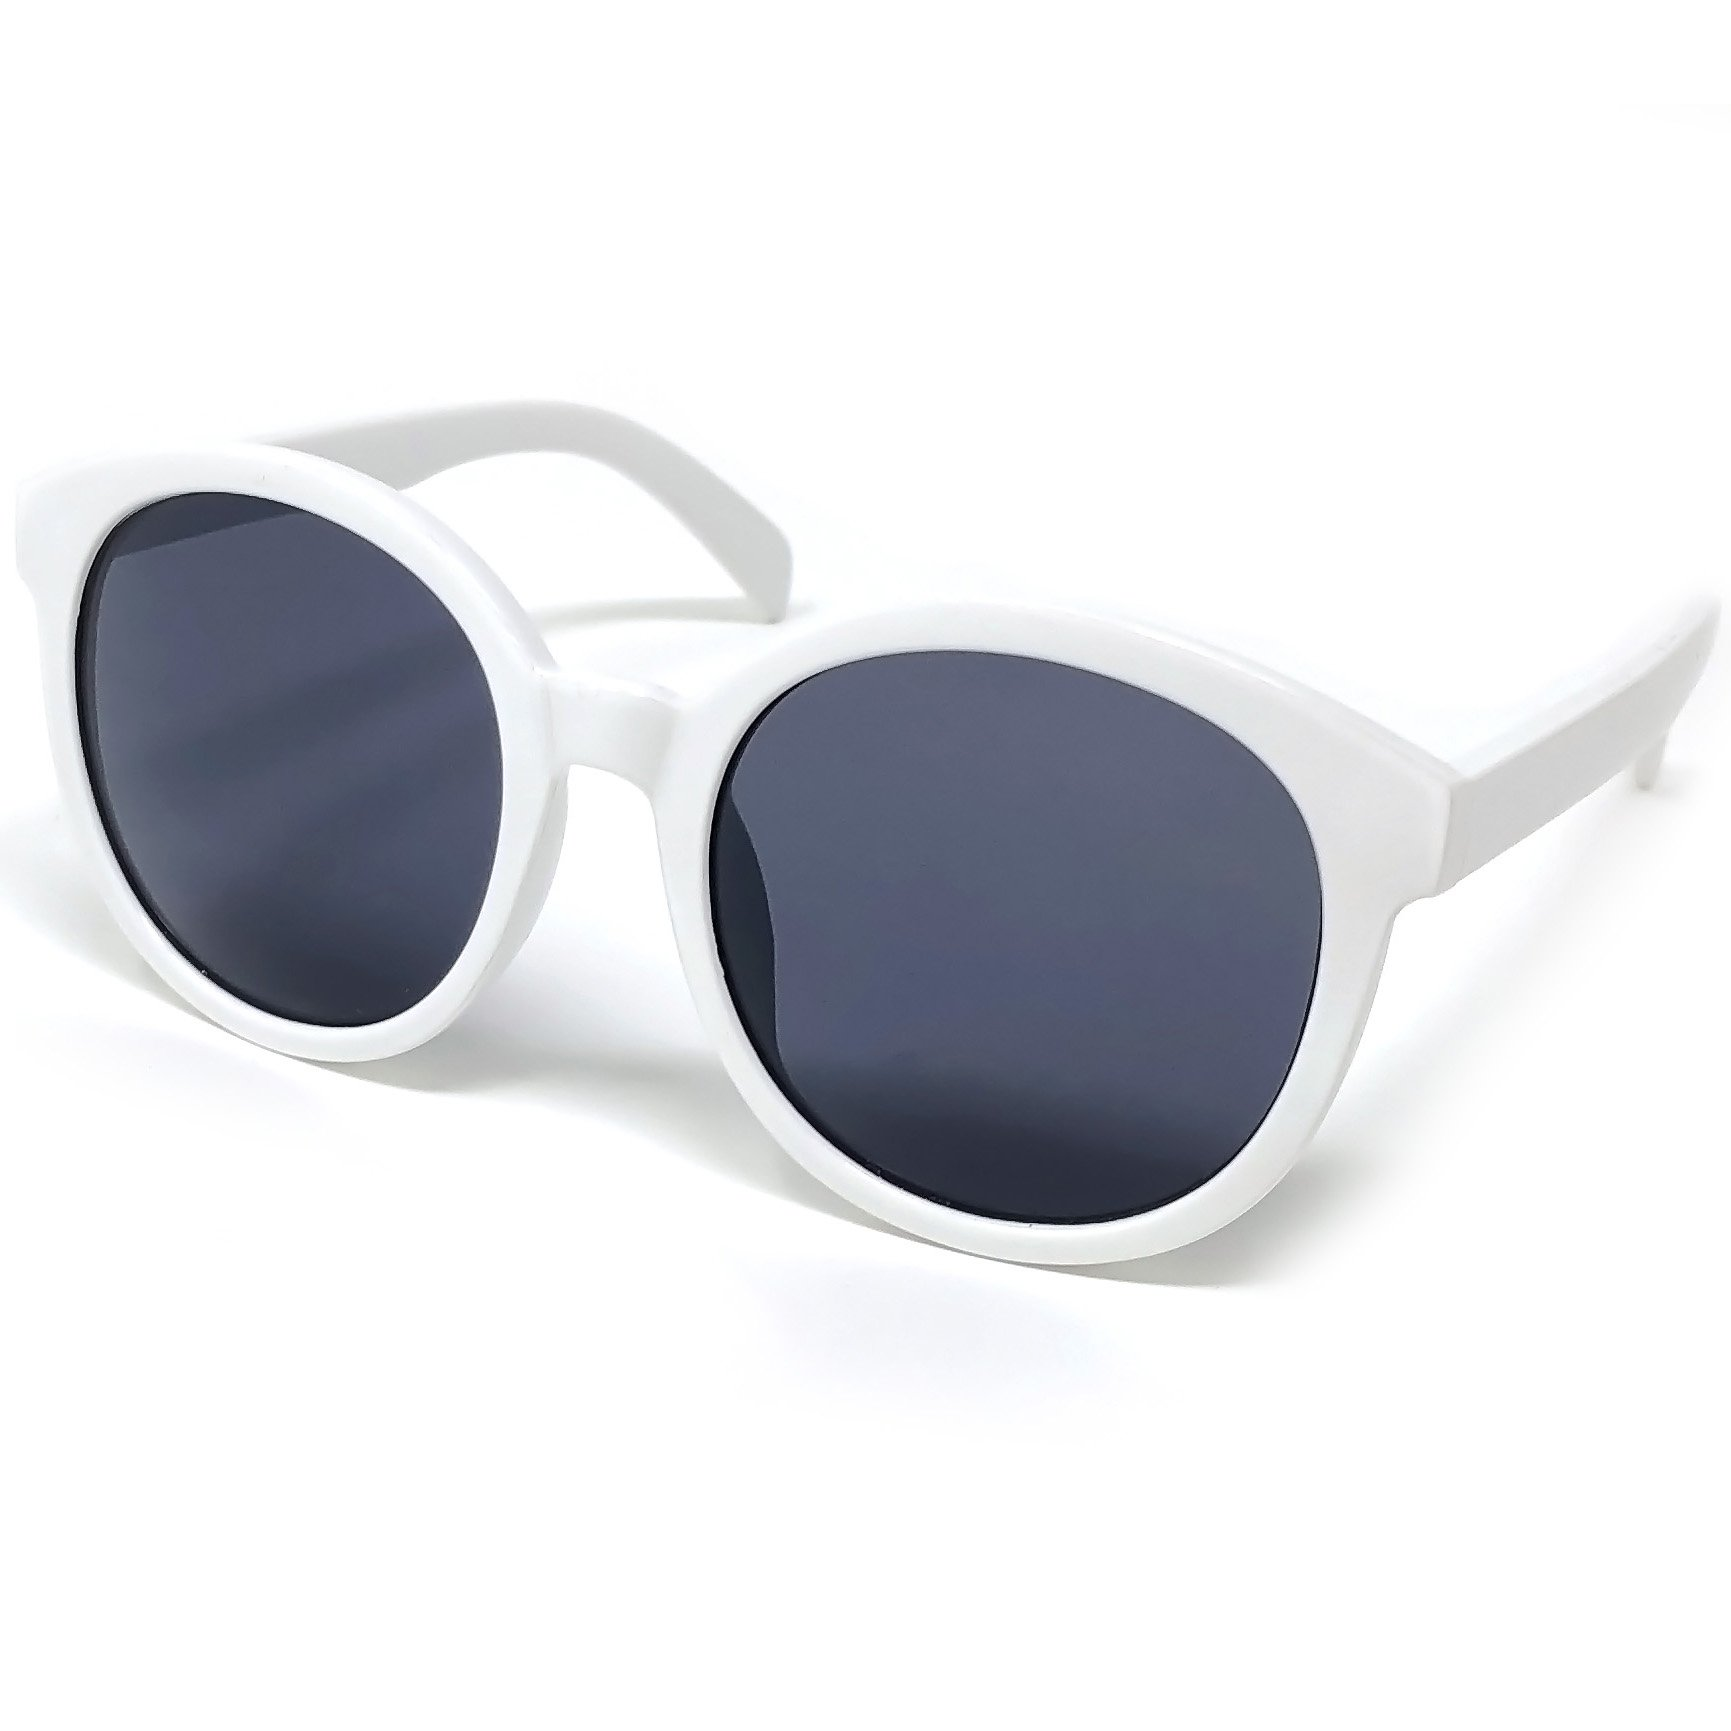 Loose Leaf Eyewear Kids Girls Round White Sunglasses in Smoke Lens with Girl Power White Case